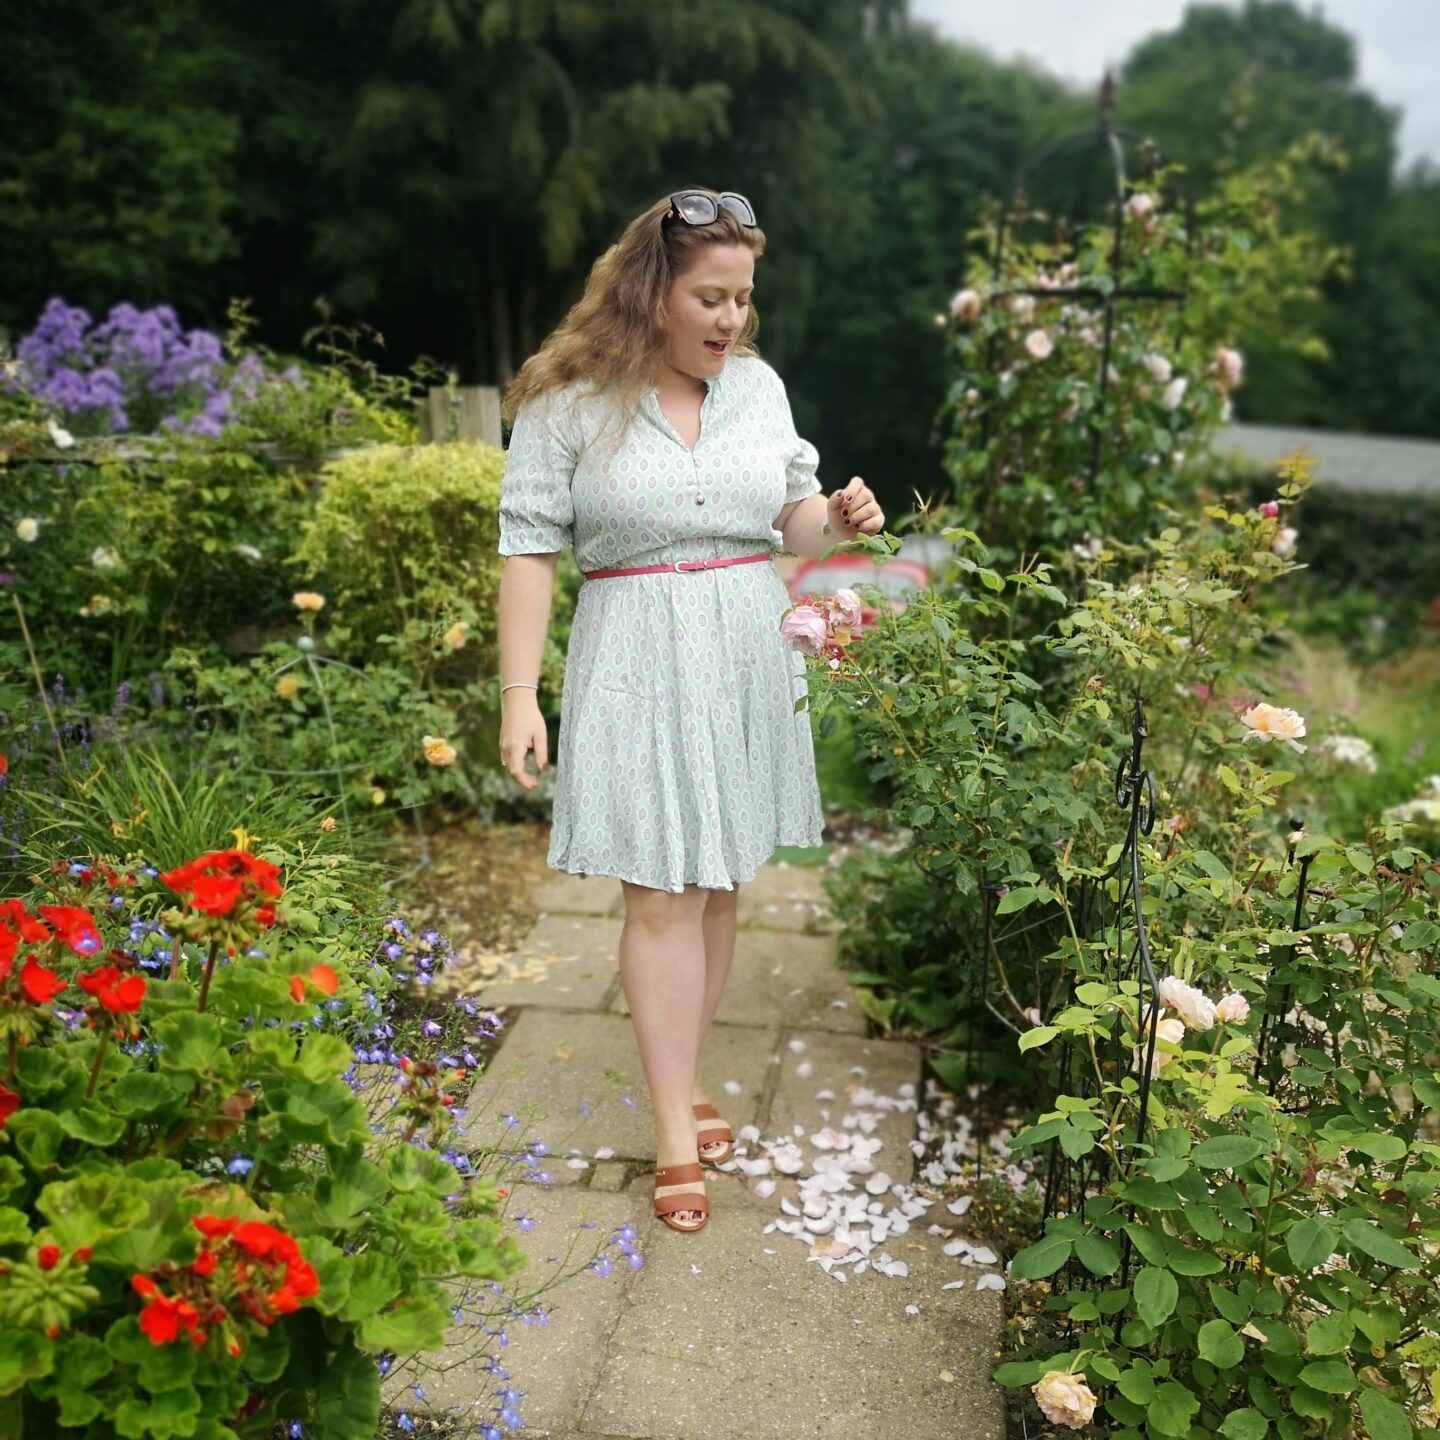 Sandro Summer Dress, French Fashion, Sandro Paris, Summer Dress, Ashford Designer Outlet, French Styling, Menthe A L'eau, Fashionista, French Chic, Chic Fashion, Parisian Brand, The Frenchie Mummy